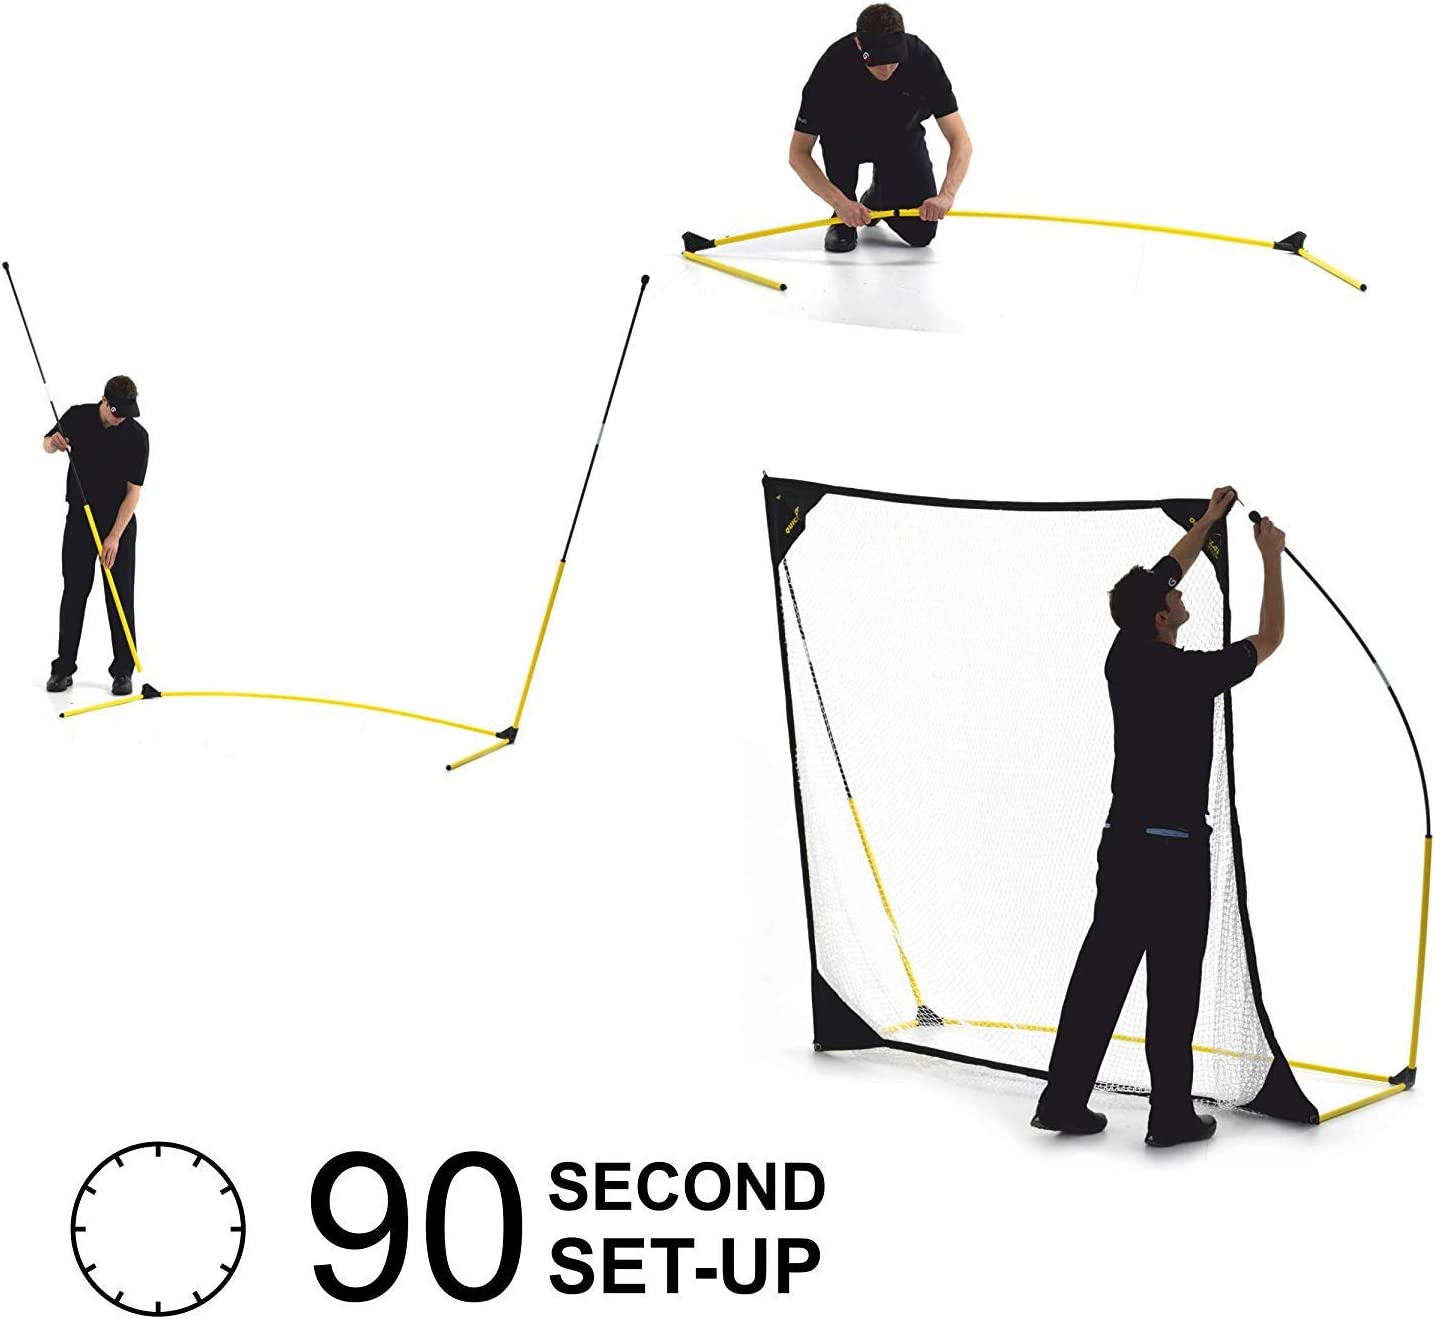 QuickPlay Quick-Hit Ultra-Portable Golf Practice Hitting Net Now Available in 2 Sizes